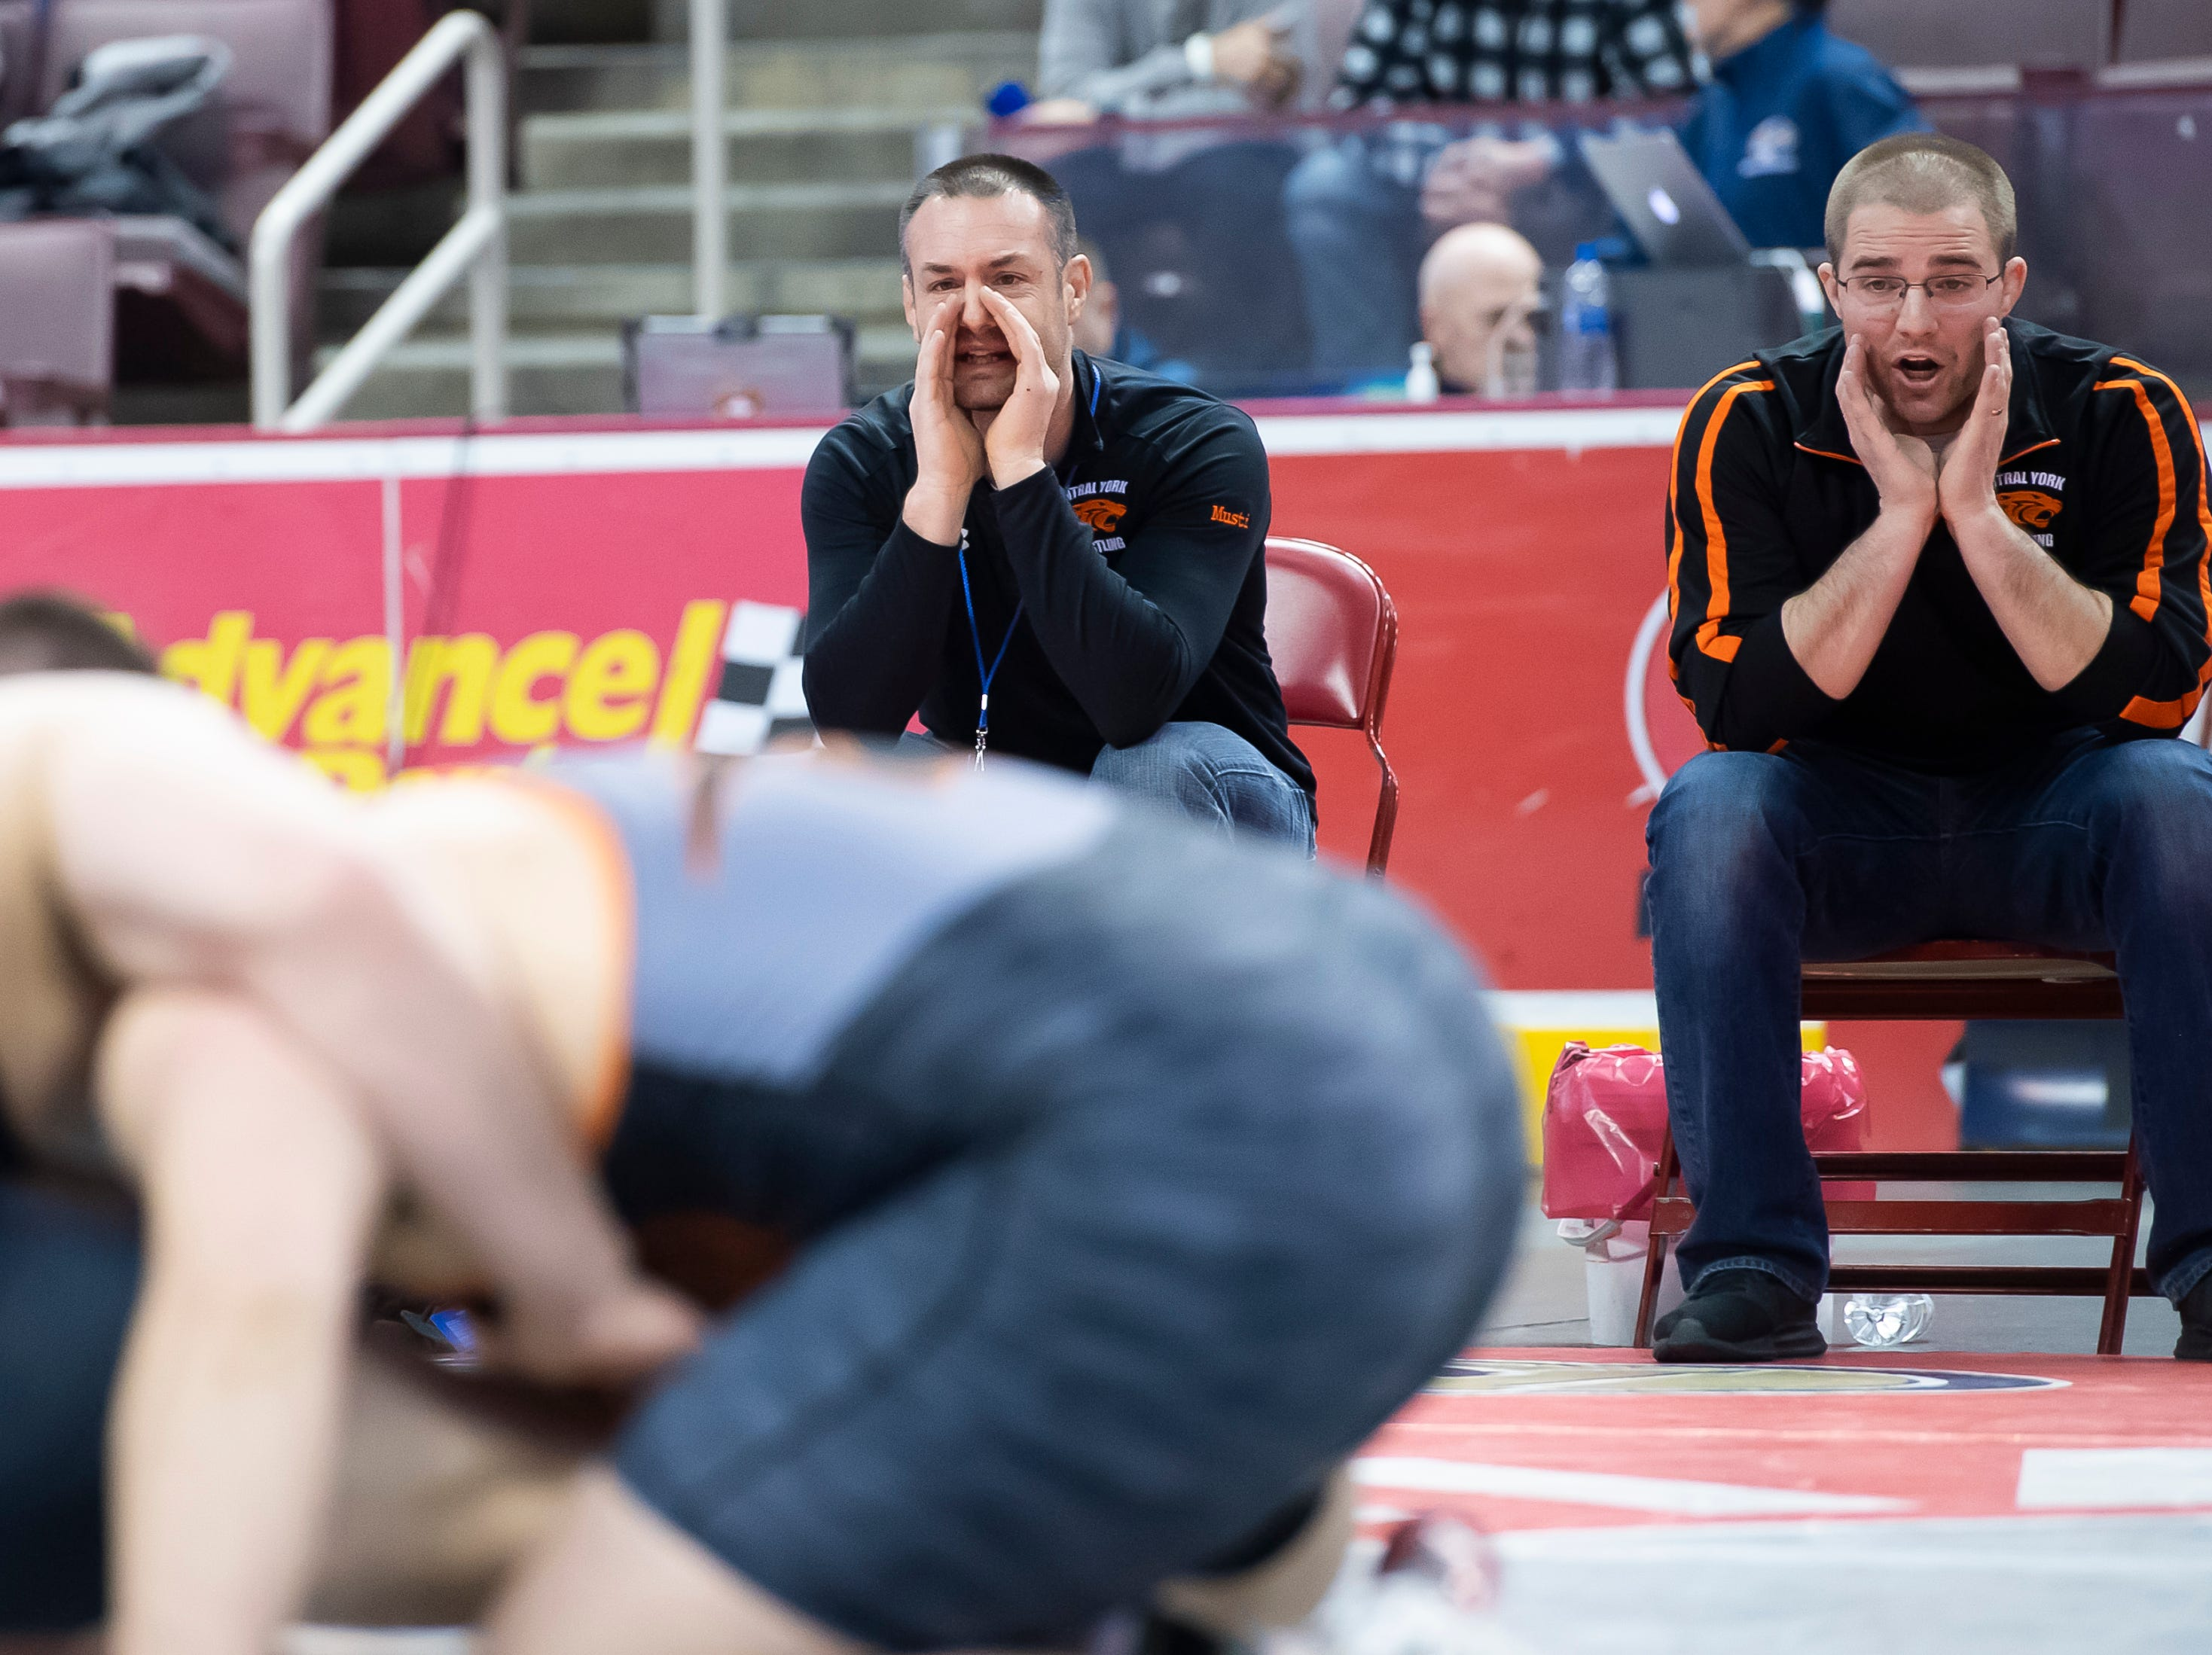 Central York coaches react as Michael Wolfgram wrestles Upper St. Clair's Jake Slinger during the 3A 285-pound semifinal bout at the Giant Center in Hershey Saturday, March 9, 2019. Slinger won by a 9-4 decision.